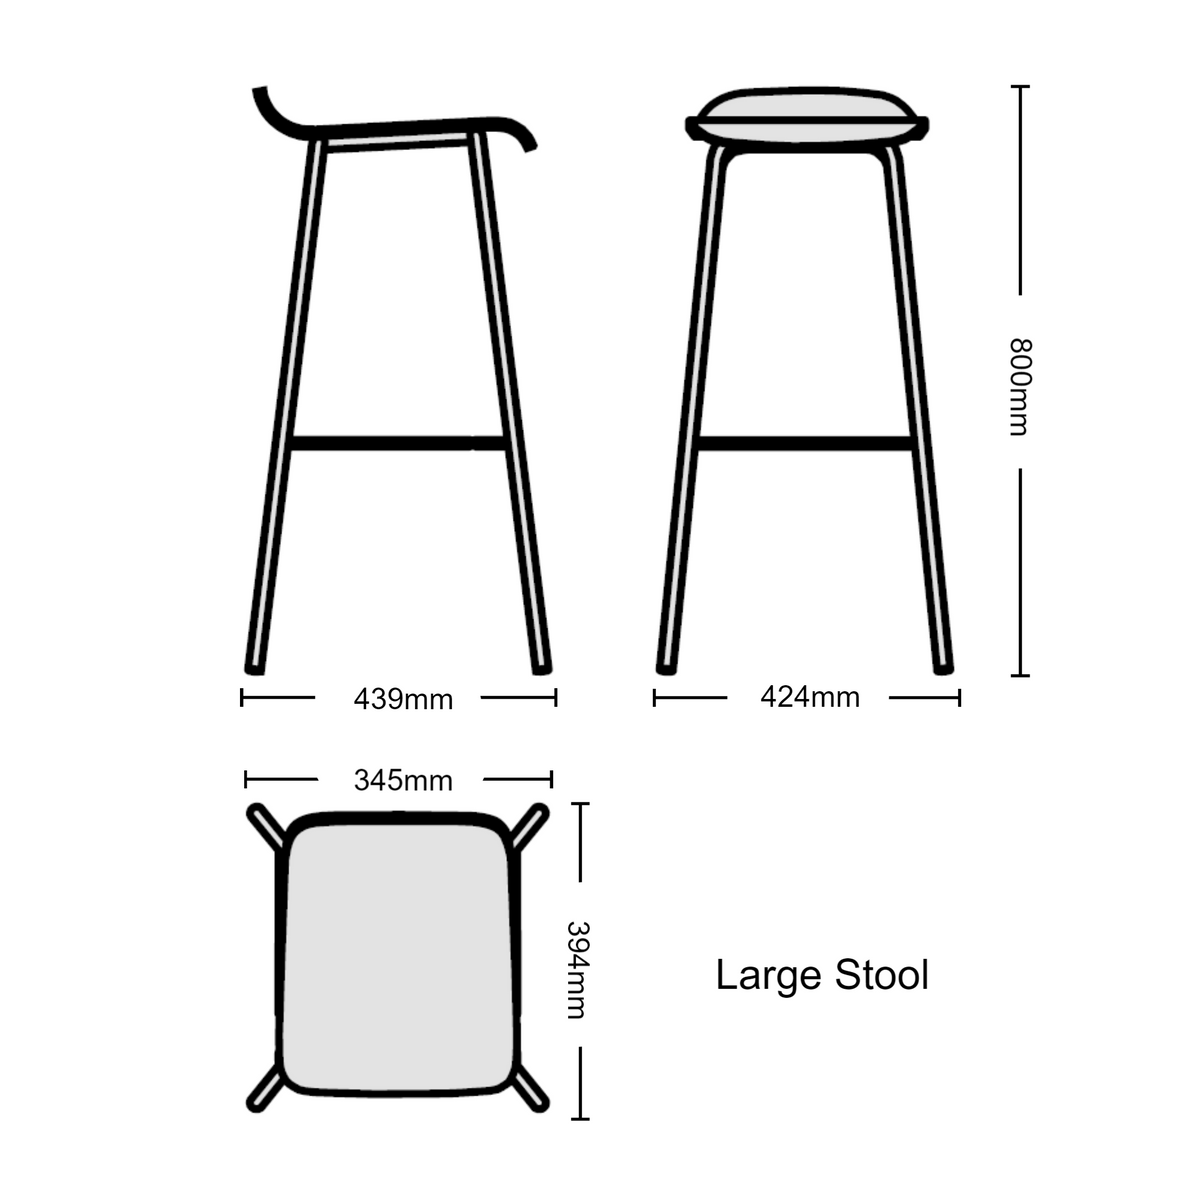 Dimensions for Edsbyn Office Upholstered Stool 800mmH